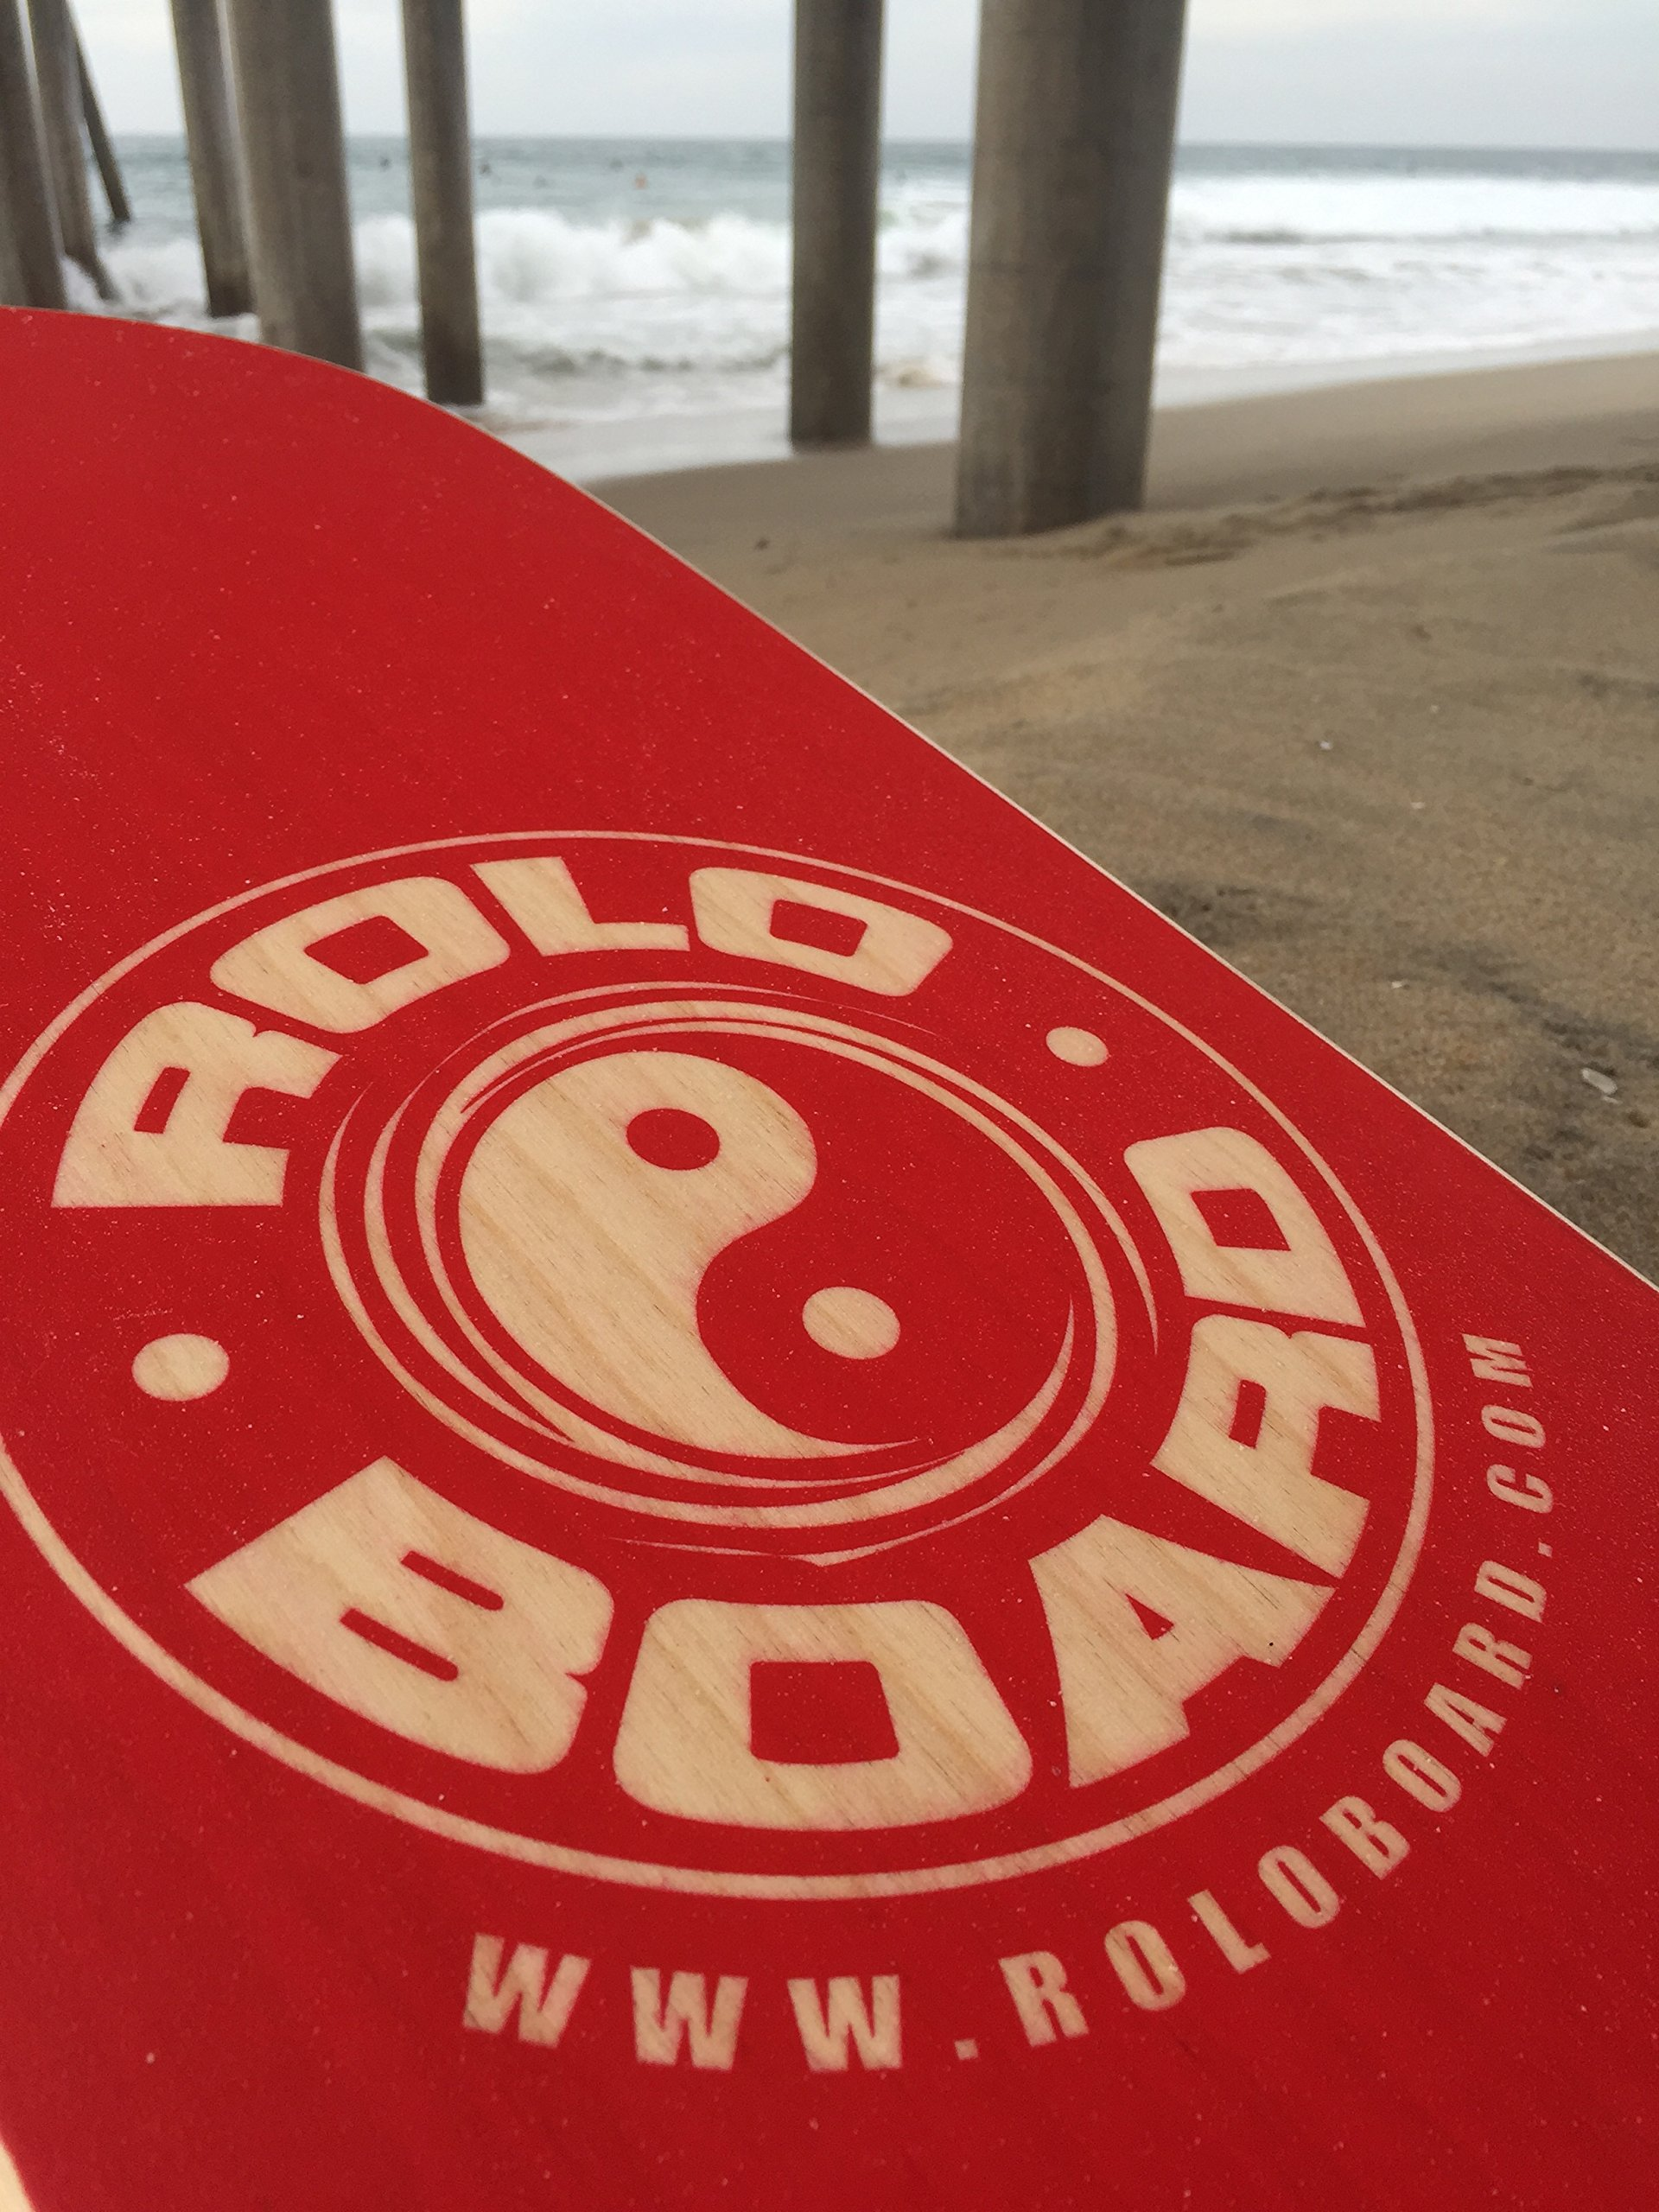 Rolo Balance Board Rad Red - Original Training Package by Rolo Board (Image #4)